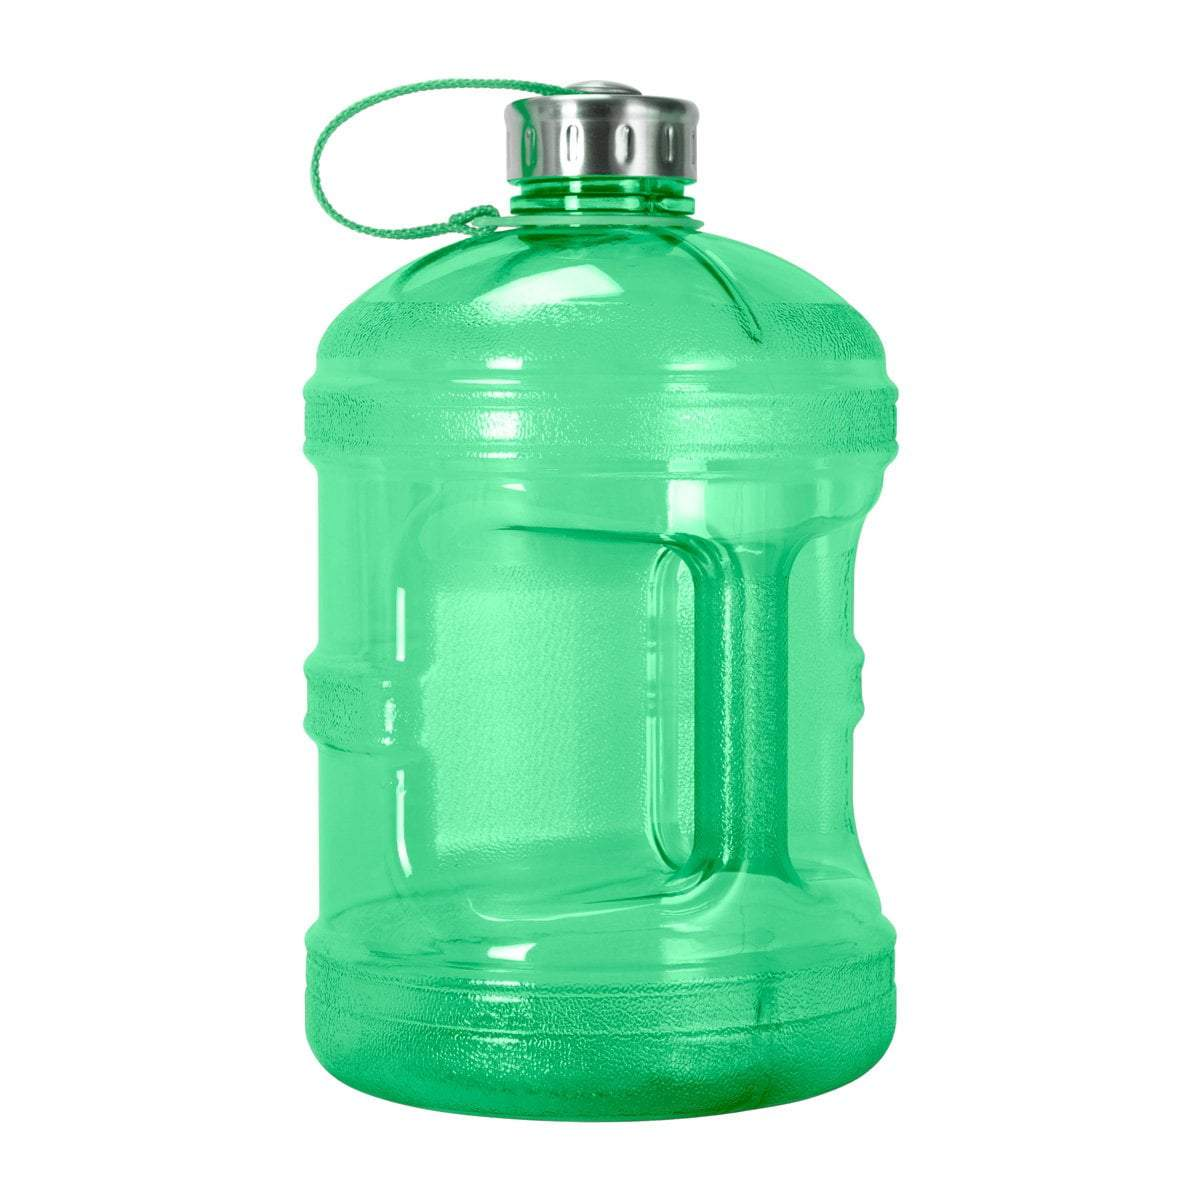 GEO Bottles Green 1 Gallon BPA FREE Bottle w/ Stainless Steel Cap